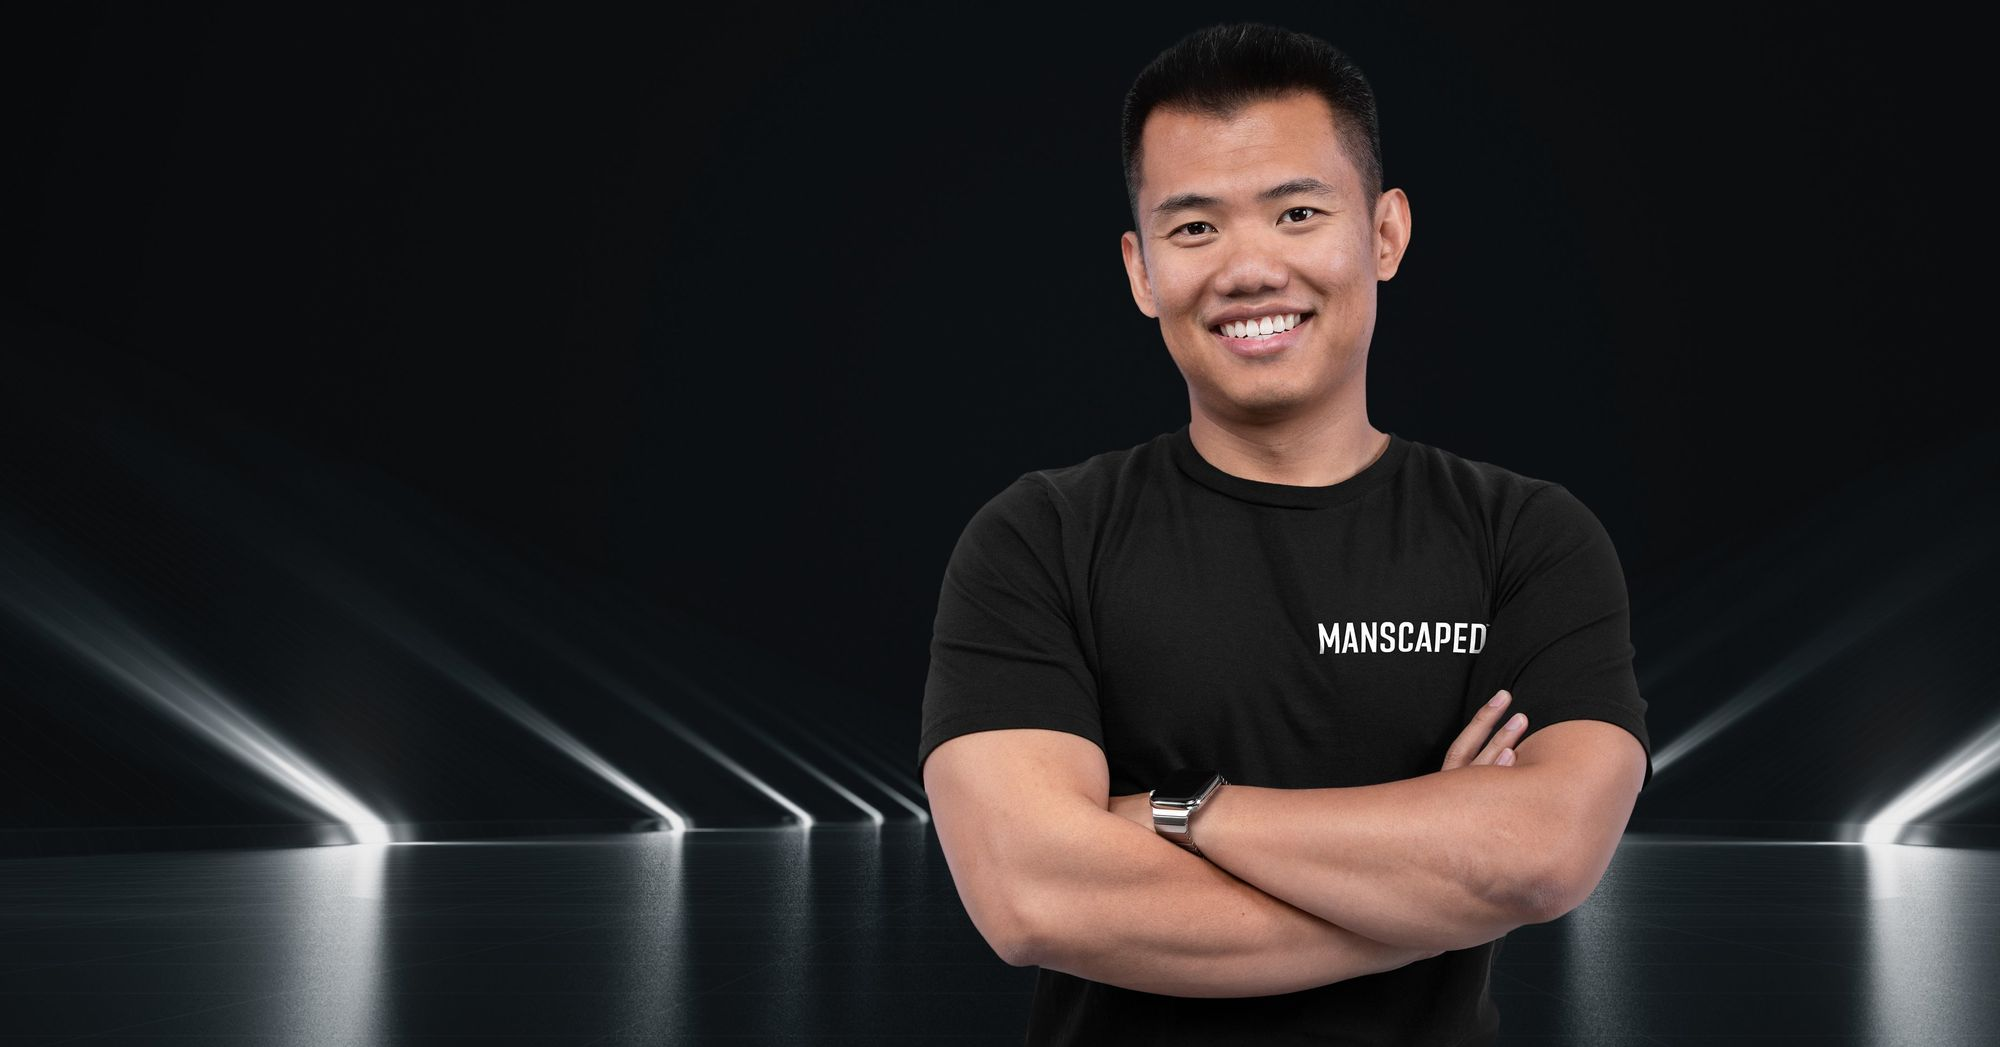 Meet our Founder and CEO, Paul Tran